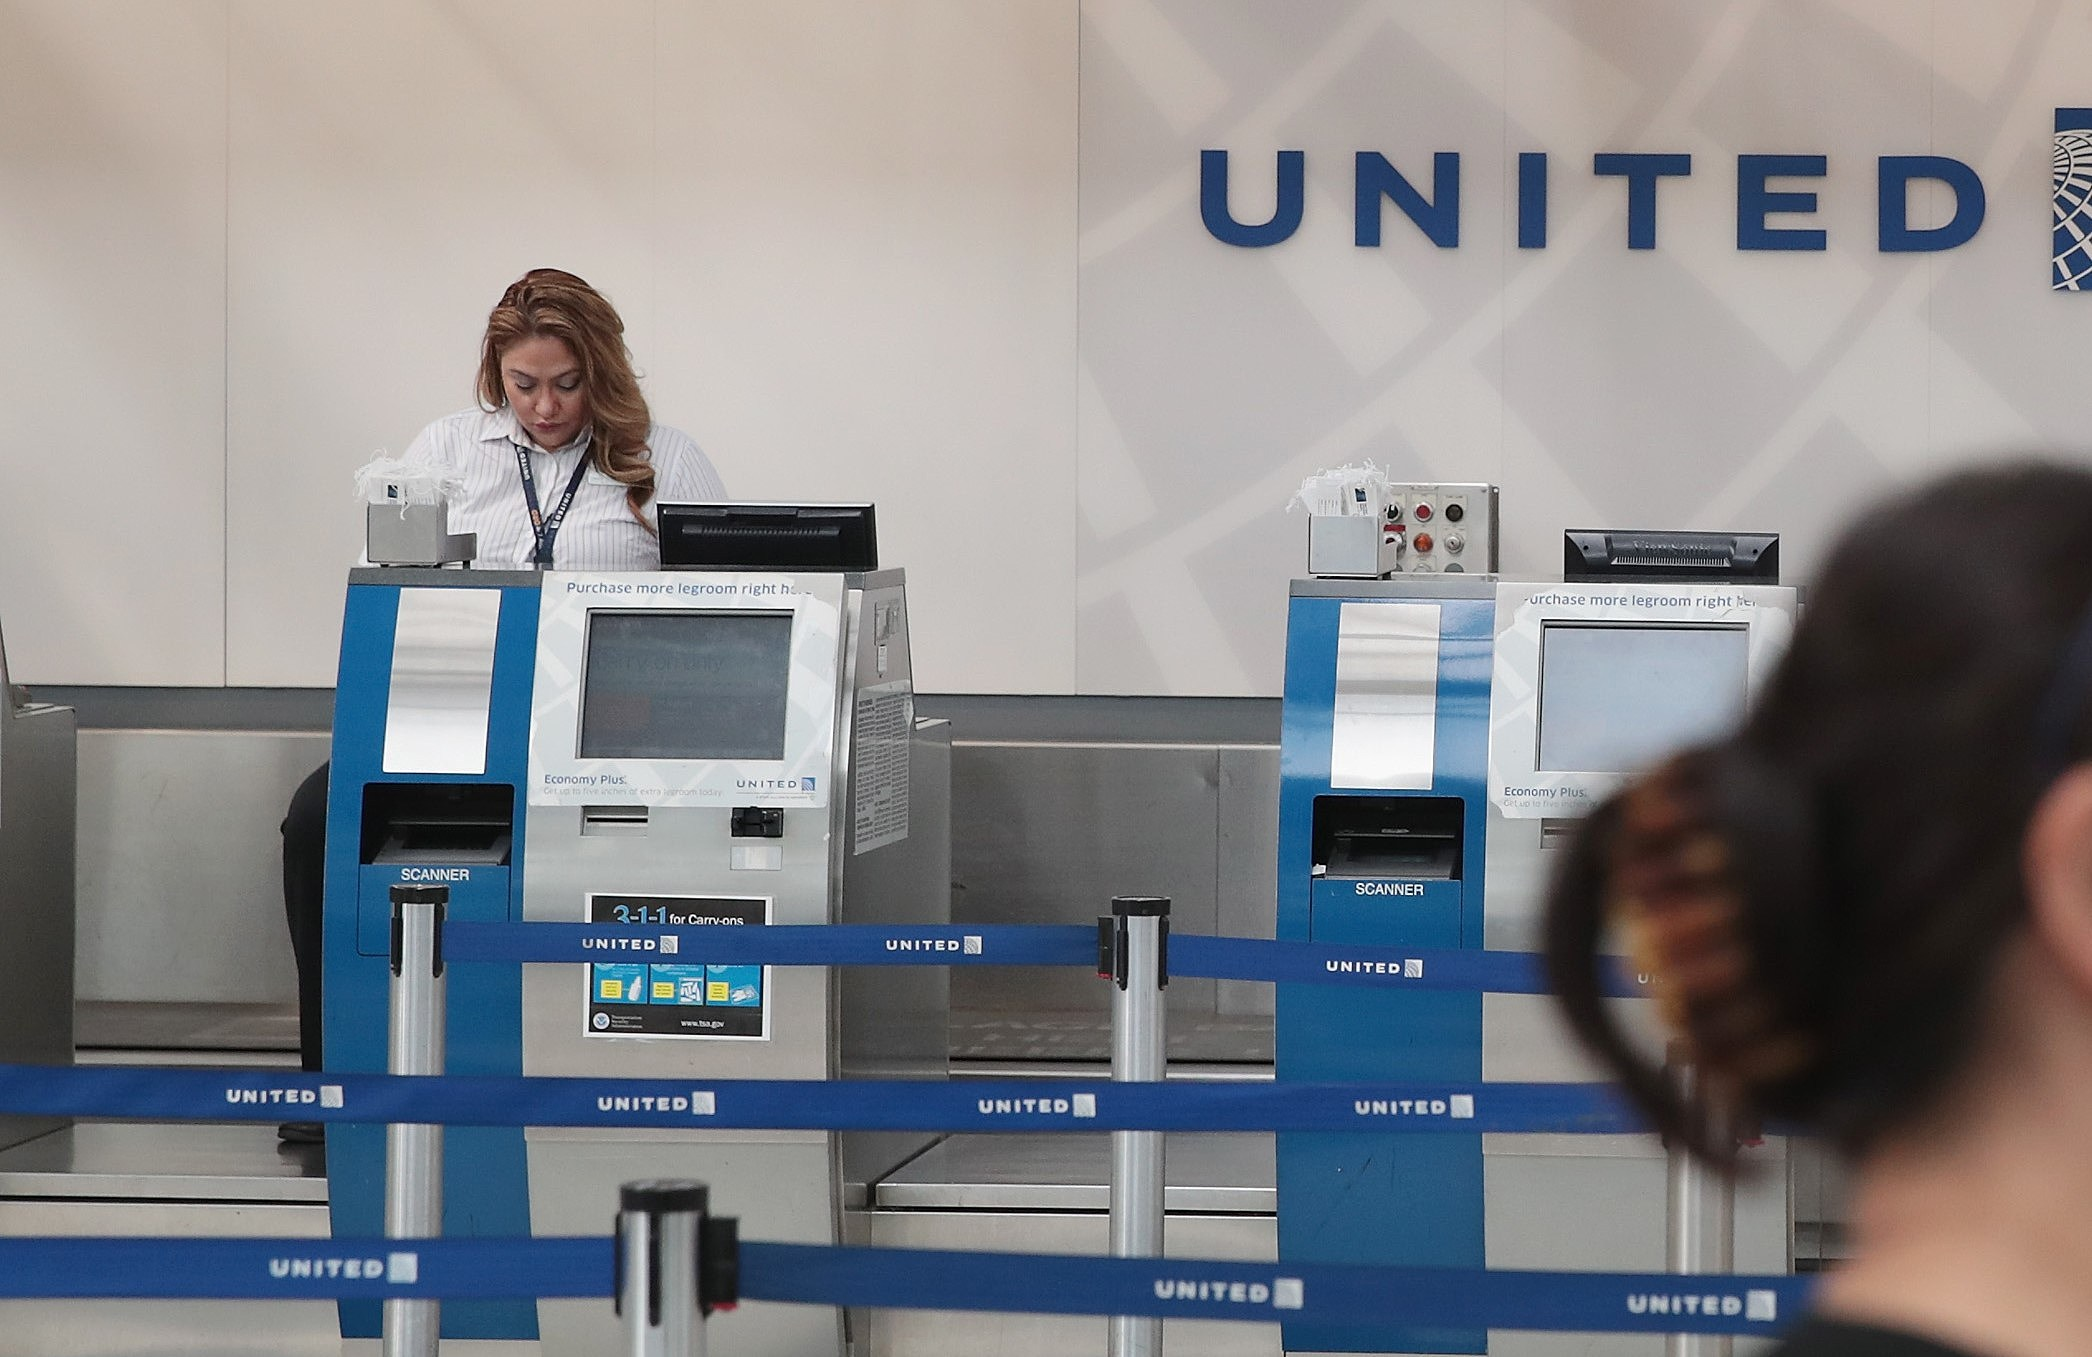 Protests At O'Hare Airport's United Terminal Over Company's Forceful Removal Of Passenger